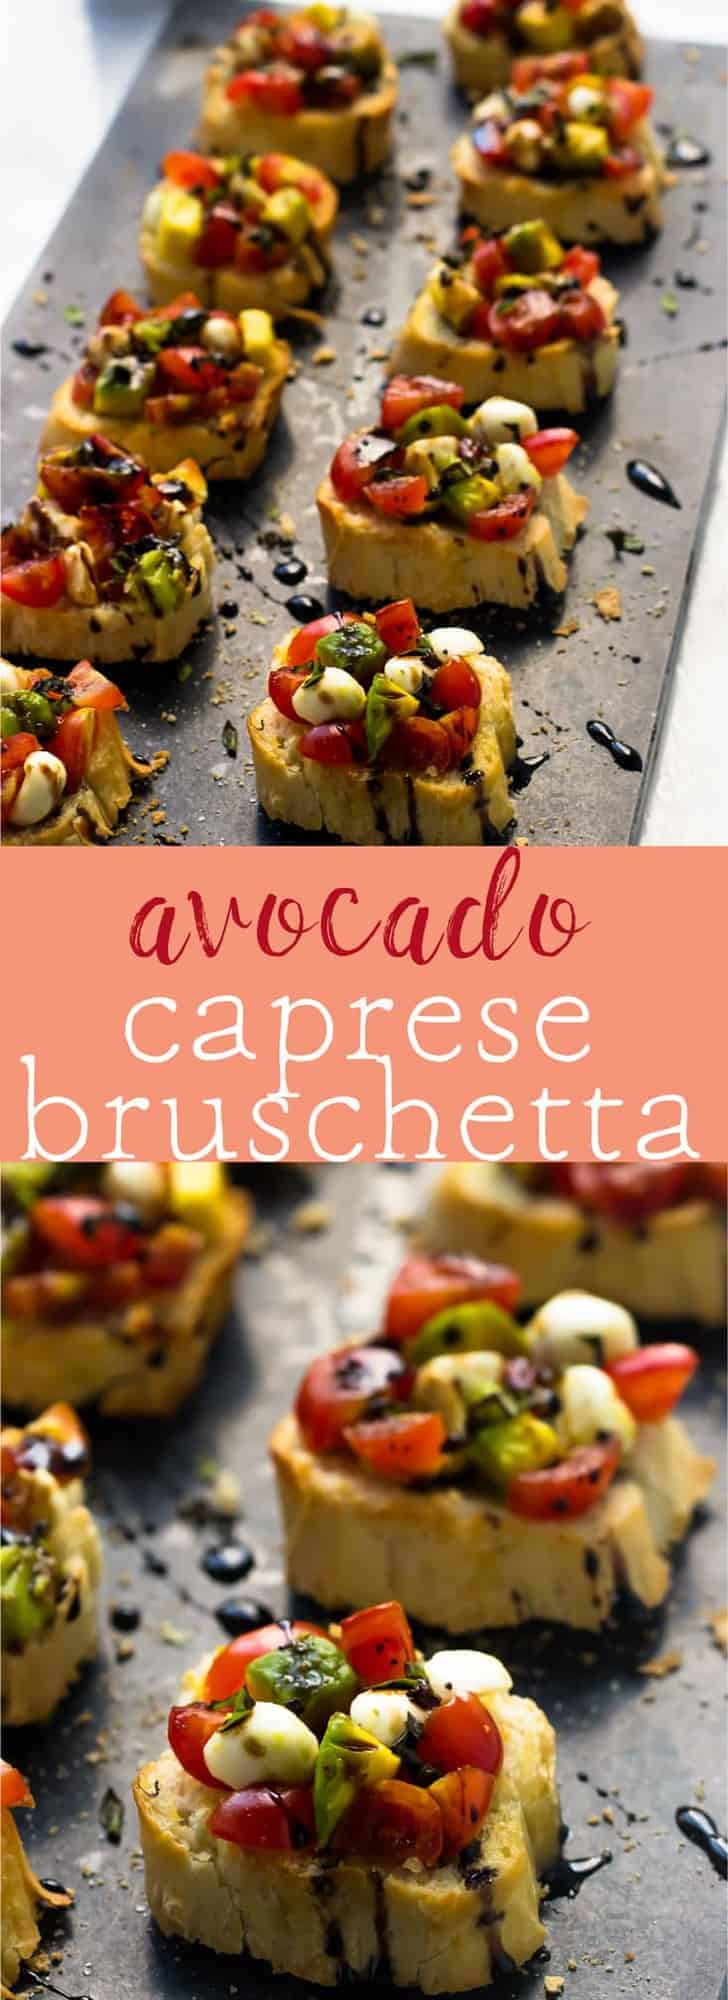 This 10 minute Avocado Caprese Bruschetta makes for the perfect quick appetiser that's always a crowd pleaser! via https://jessicainthekitchen.com